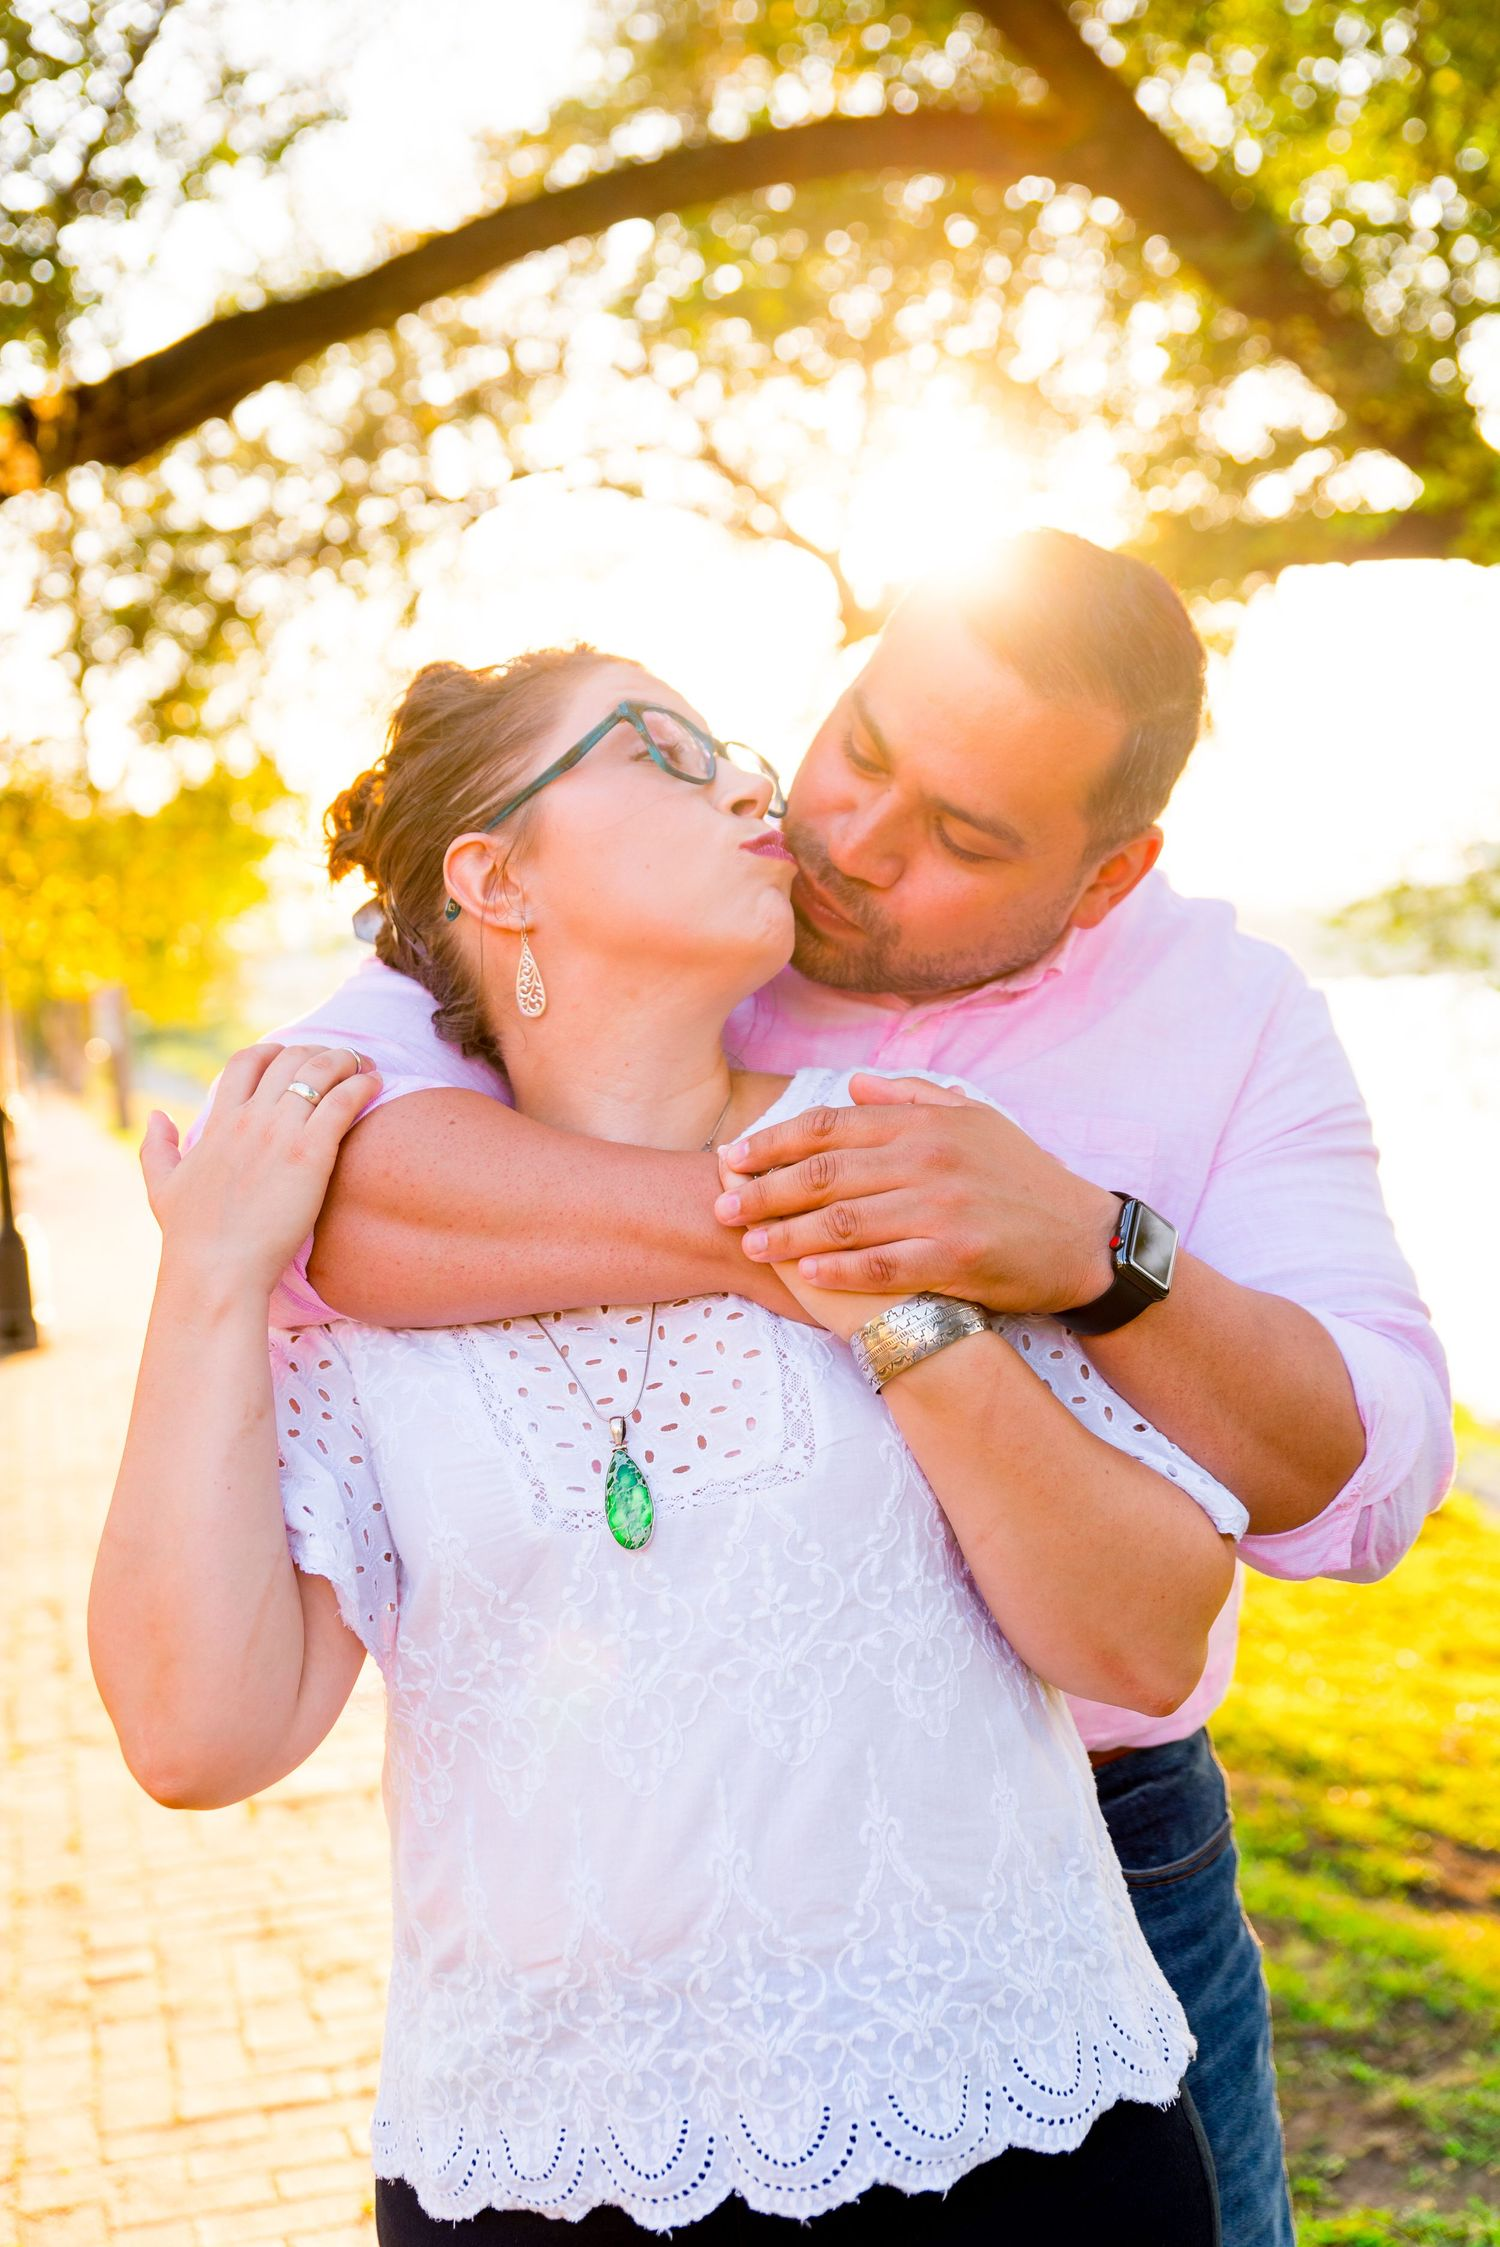 man in pink shirt hugs his fiancee in white shirt from behind and they kiss